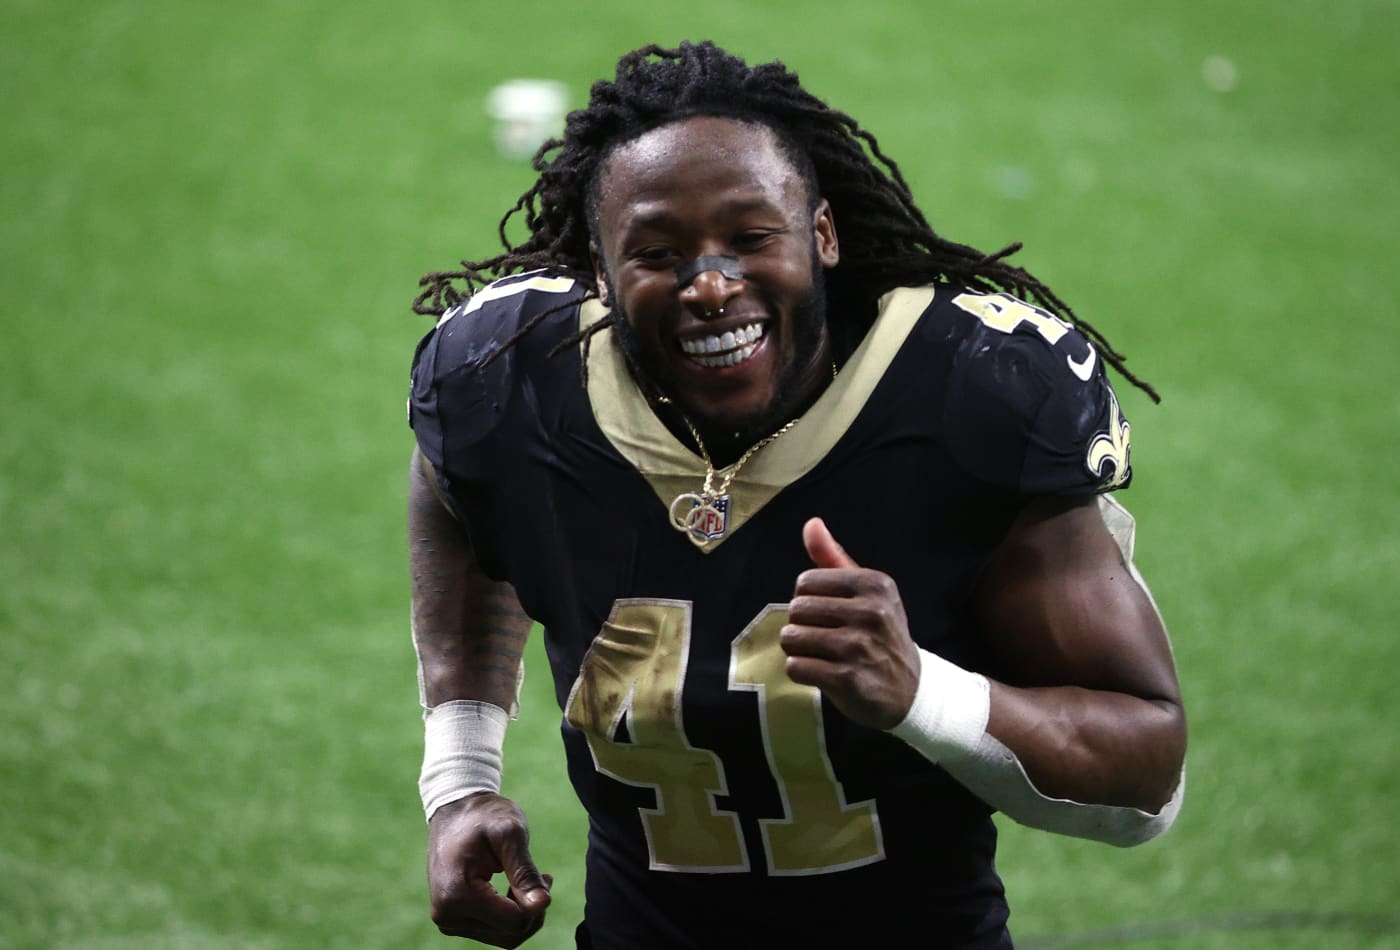 NFL star Alvin Kamara has a $75 million contract, but hasn't spent a dime of his football earnings